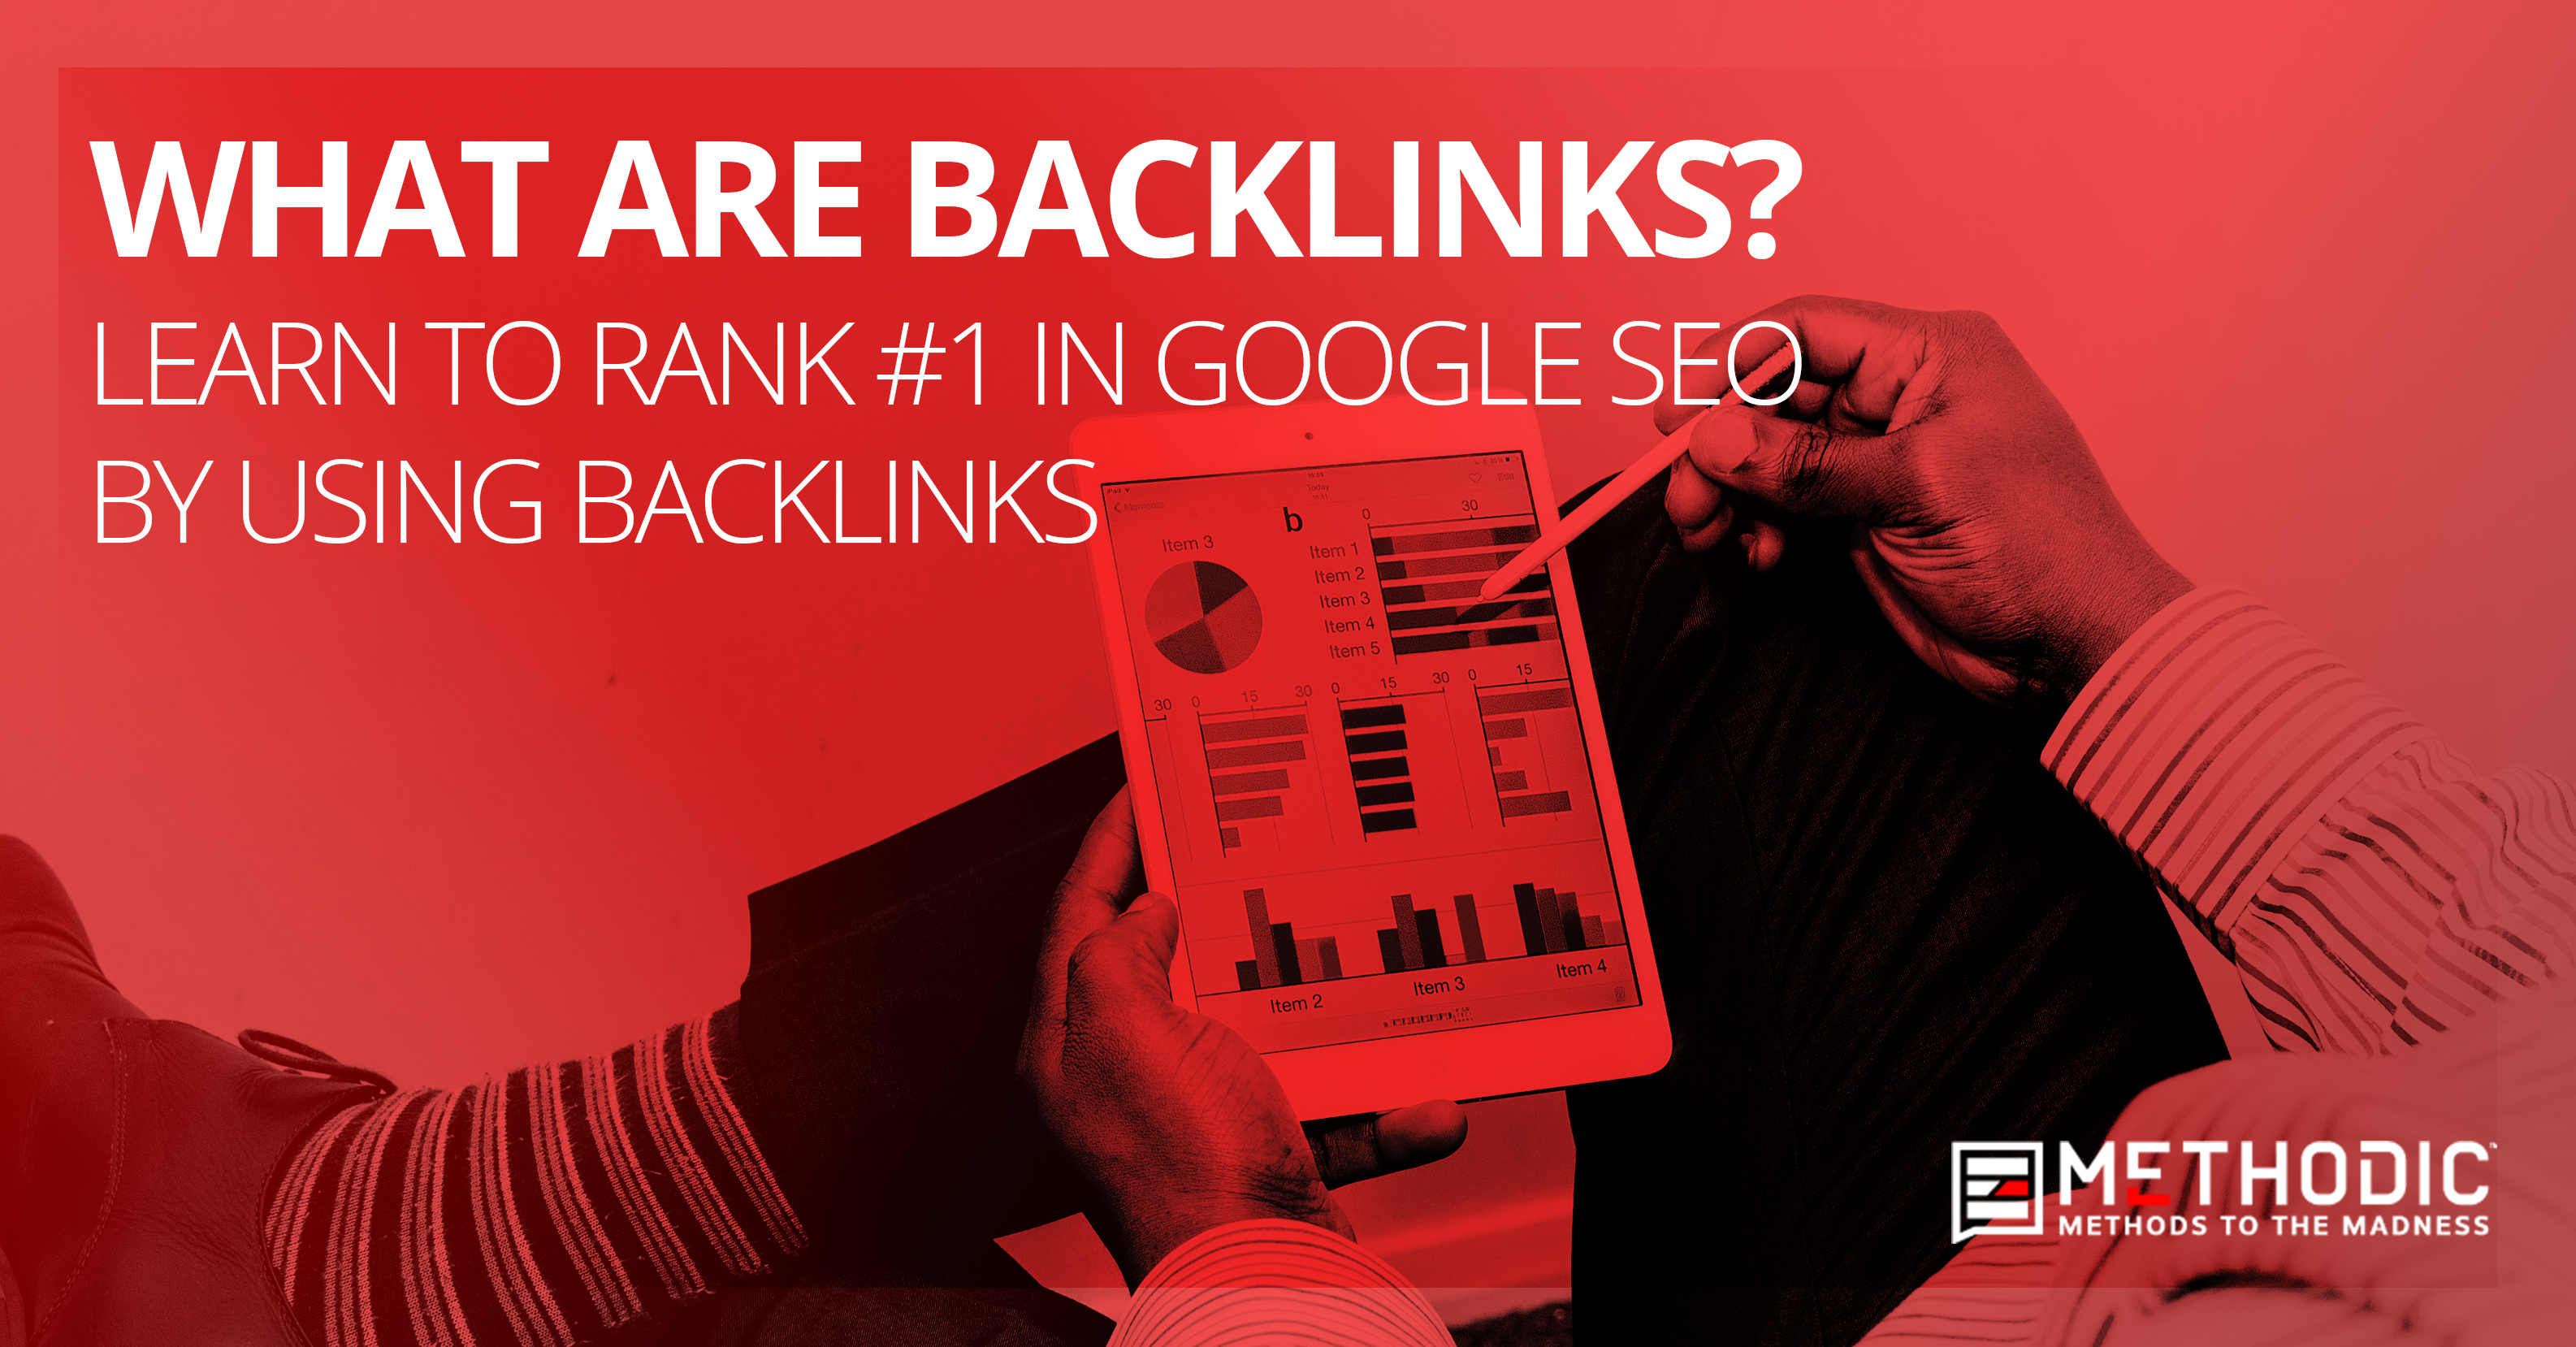 What Are Backlinks? Learn to Rank #1 in Google SEO by Using Backlinks